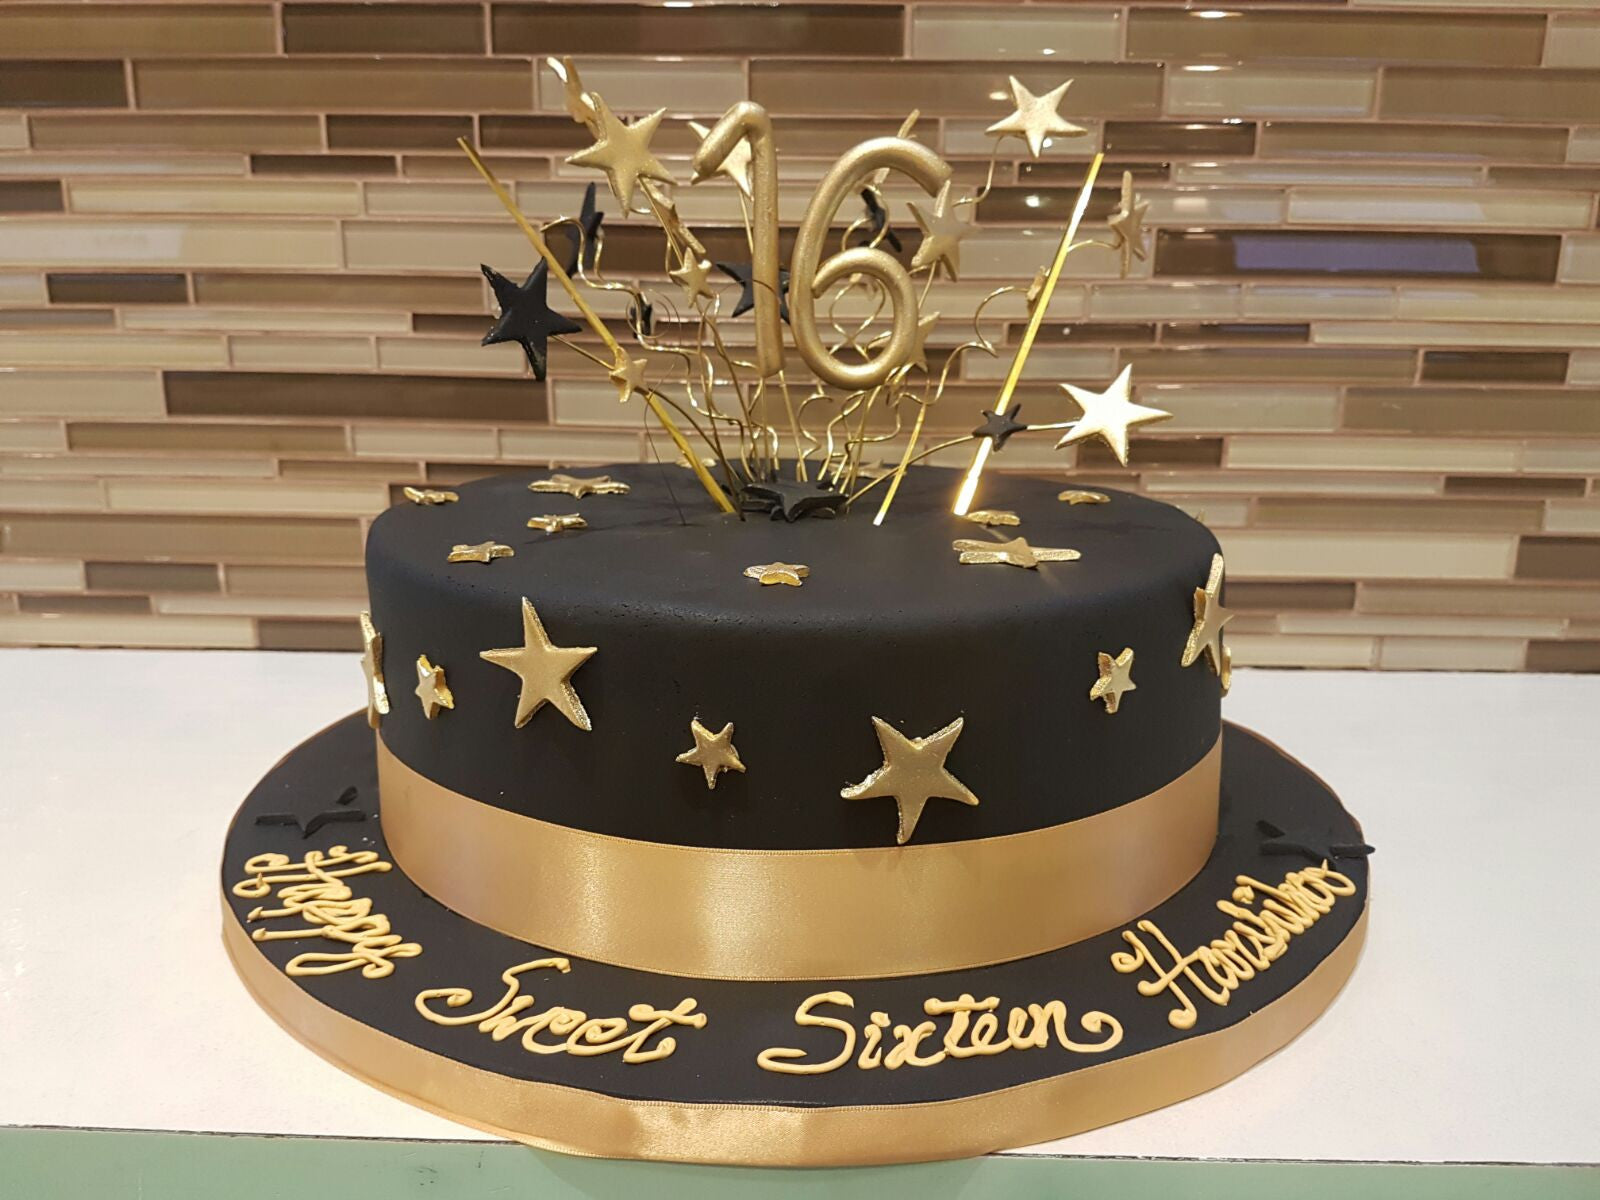 Fabulous Harshika Sweet Sixteen Cake Rashmis Bakery Personalised Birthday Cards Veneteletsinfo